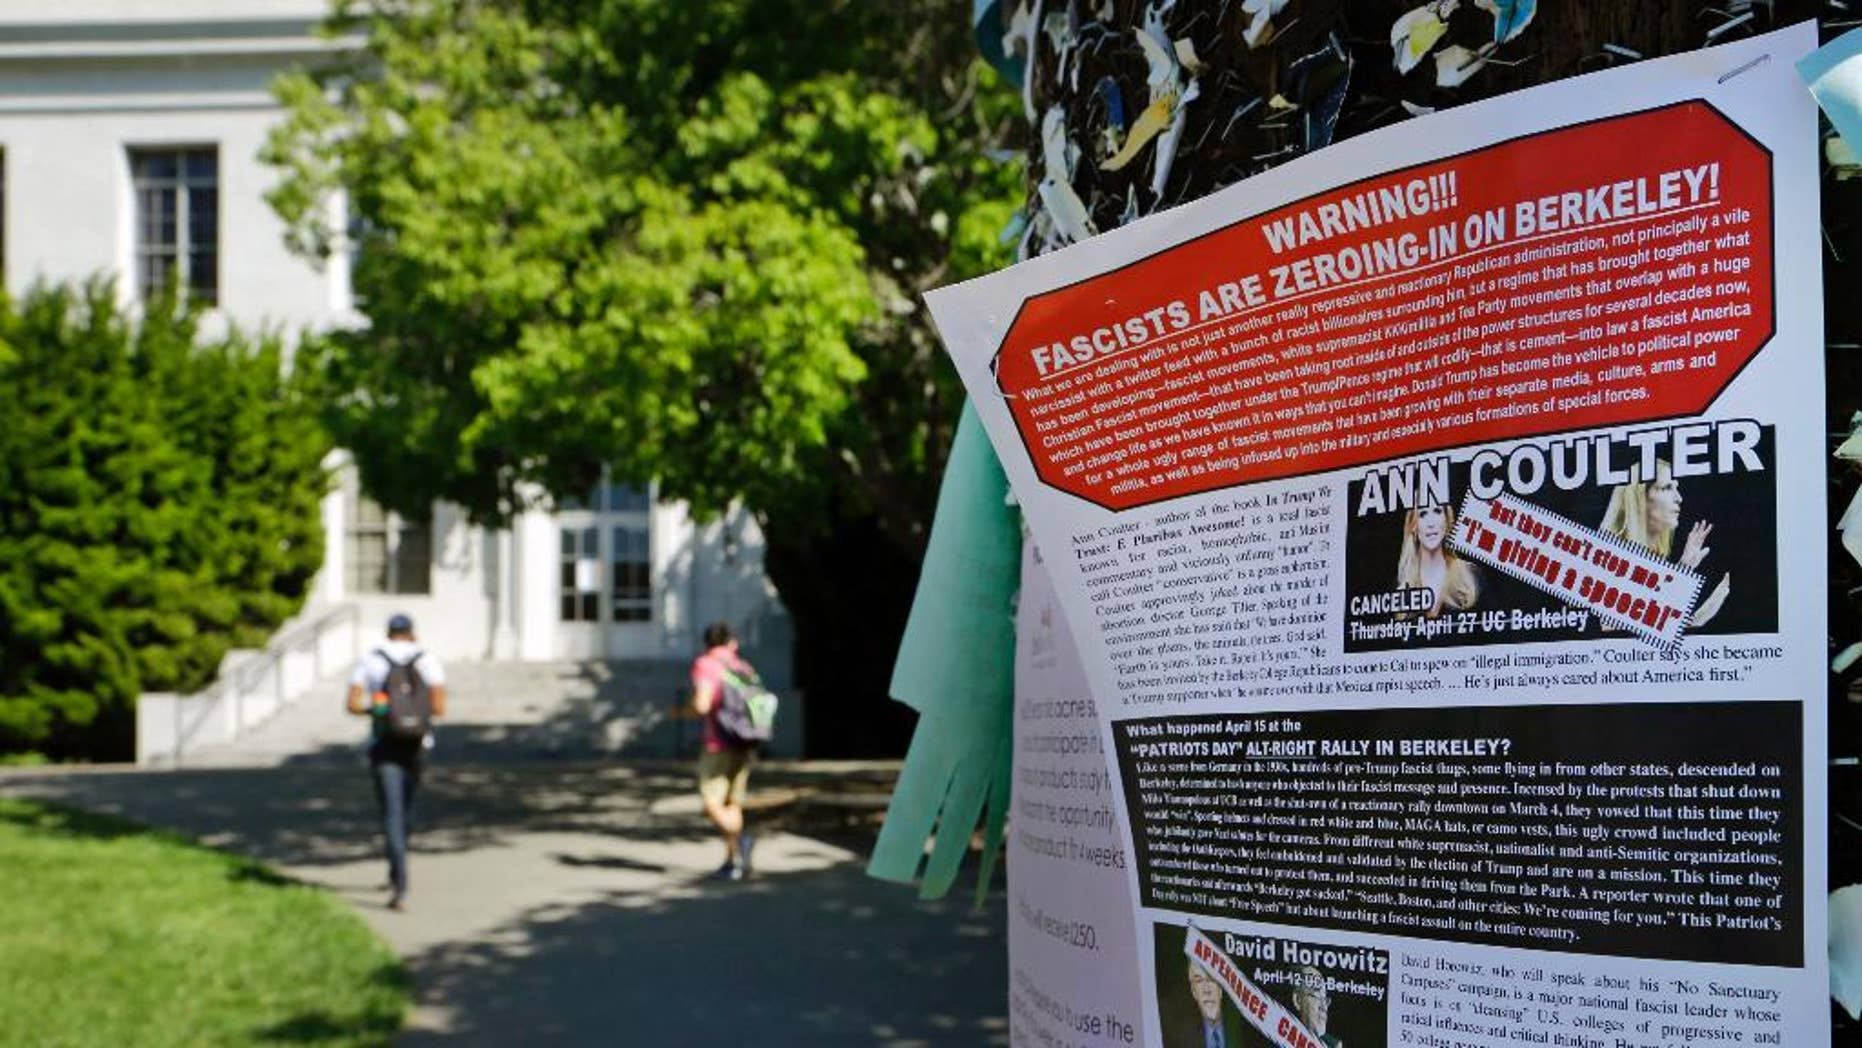 FILE - In this Friday, April 21, 2017, file photo, a leaflet is seen stapled to a message board near Sproul Hall on the University of California at Berkeley in Berkeley, Calif. The University of California, Berkeley says it's preparing for possible violence on campus whether Ann Coulter comes to speak or not. (AP Photo/Ben Margot, File)